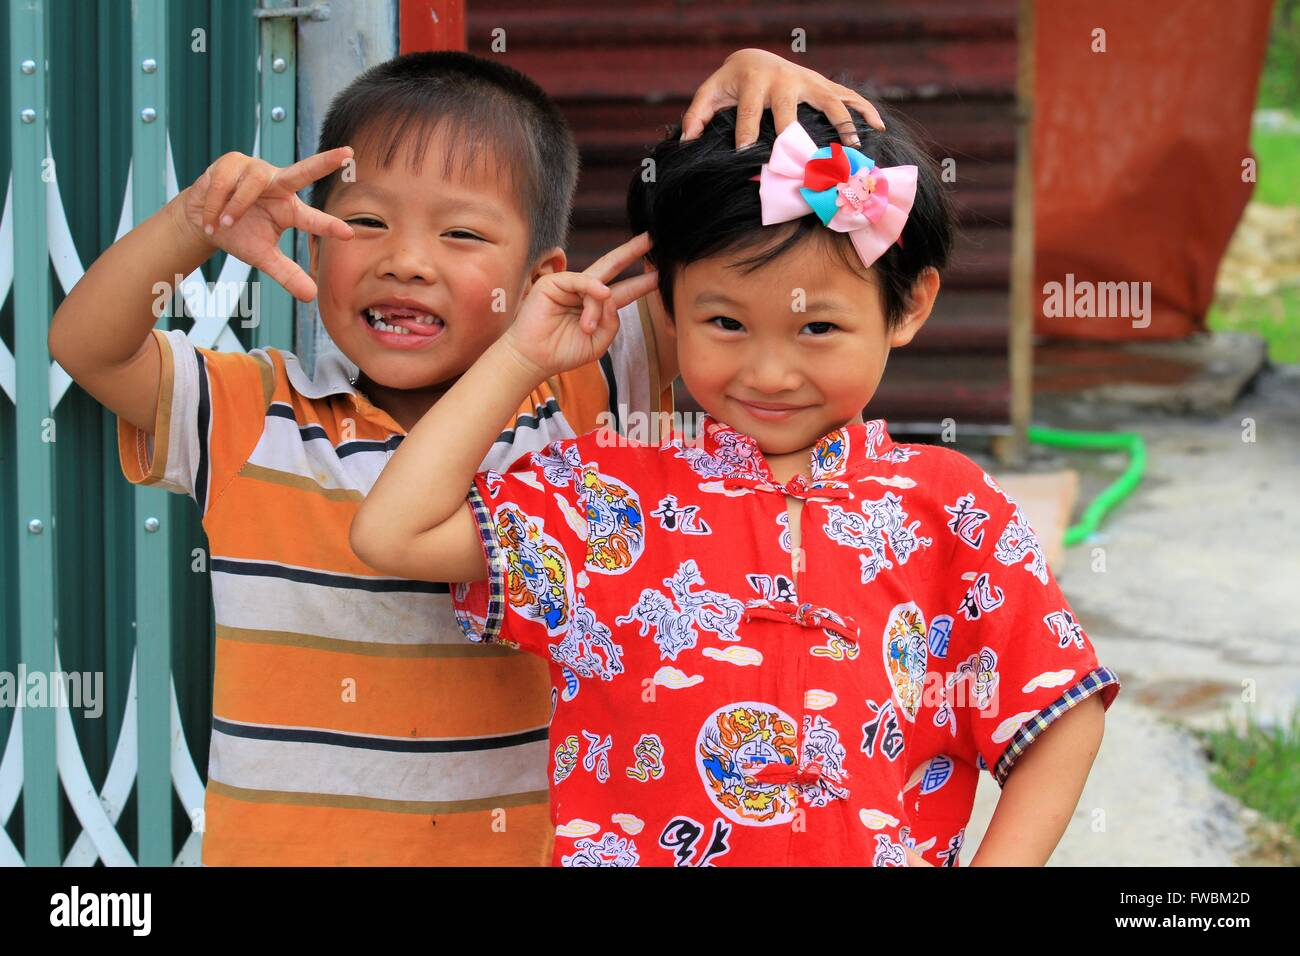 Portrait of smiling children, Sapa Surroundings, Vietnam, Asia Stock Photo